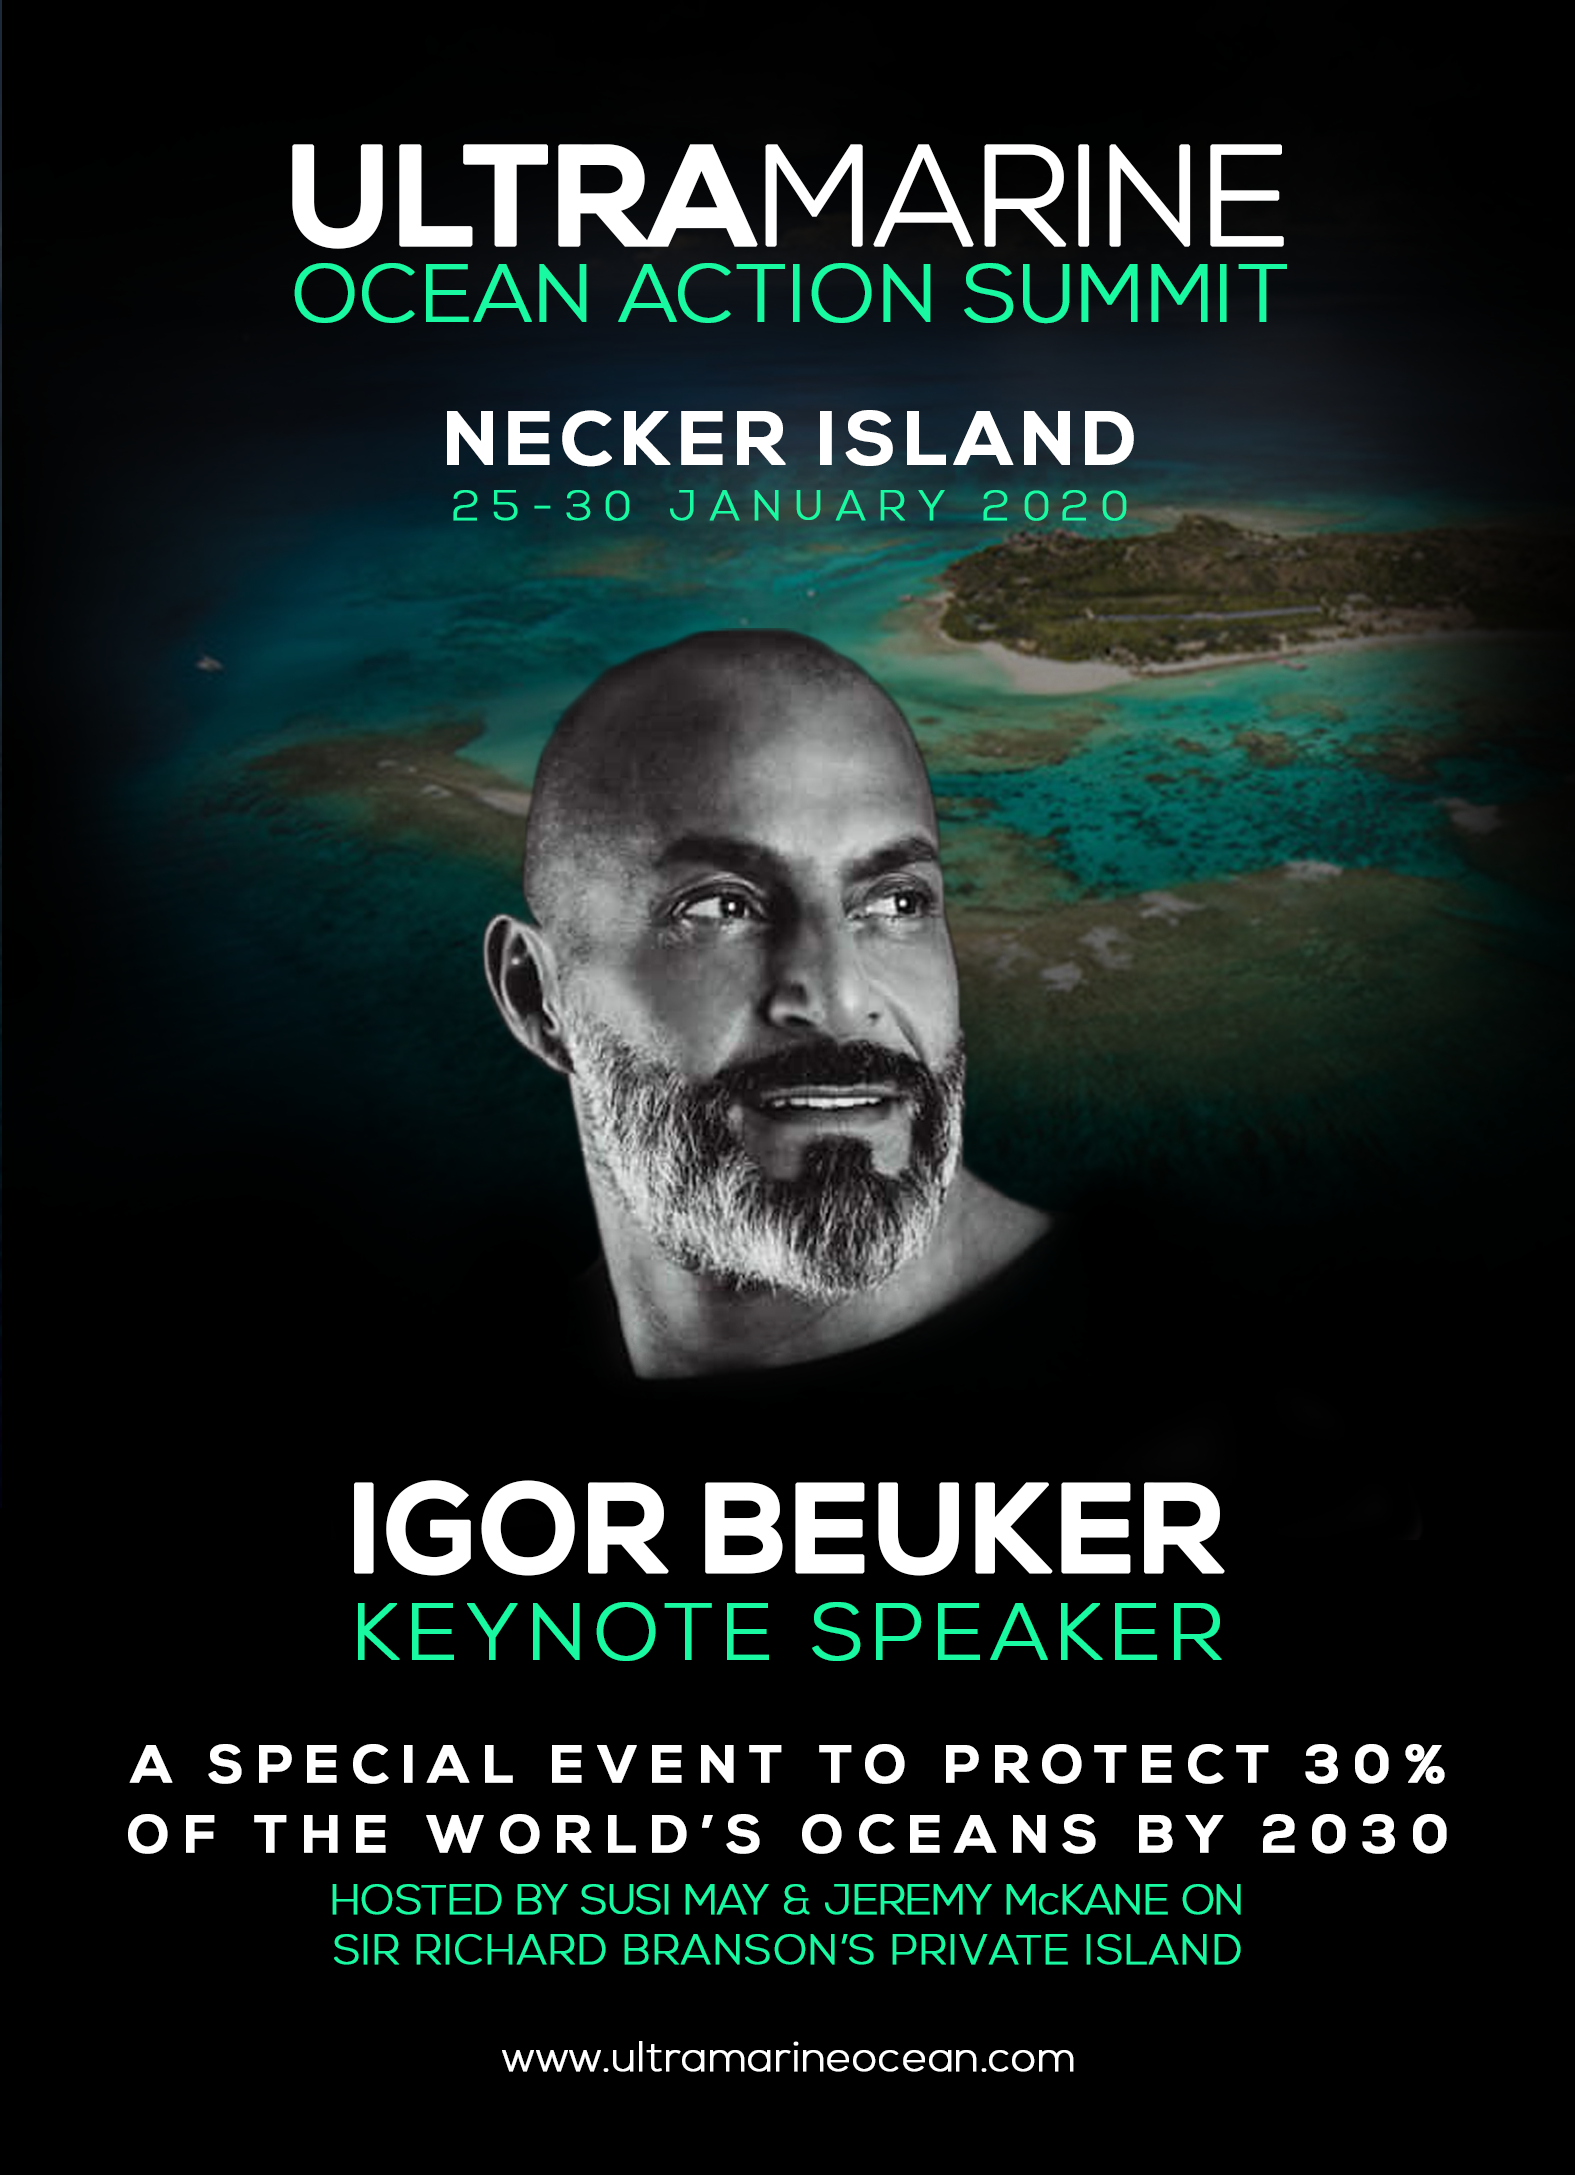 IGOR BEUKER & RICHARD BRANSON- KEYNOTE SPEAKERS FOR HUMANITY- NECKER ISLAND ULTRAMARINE 2.2